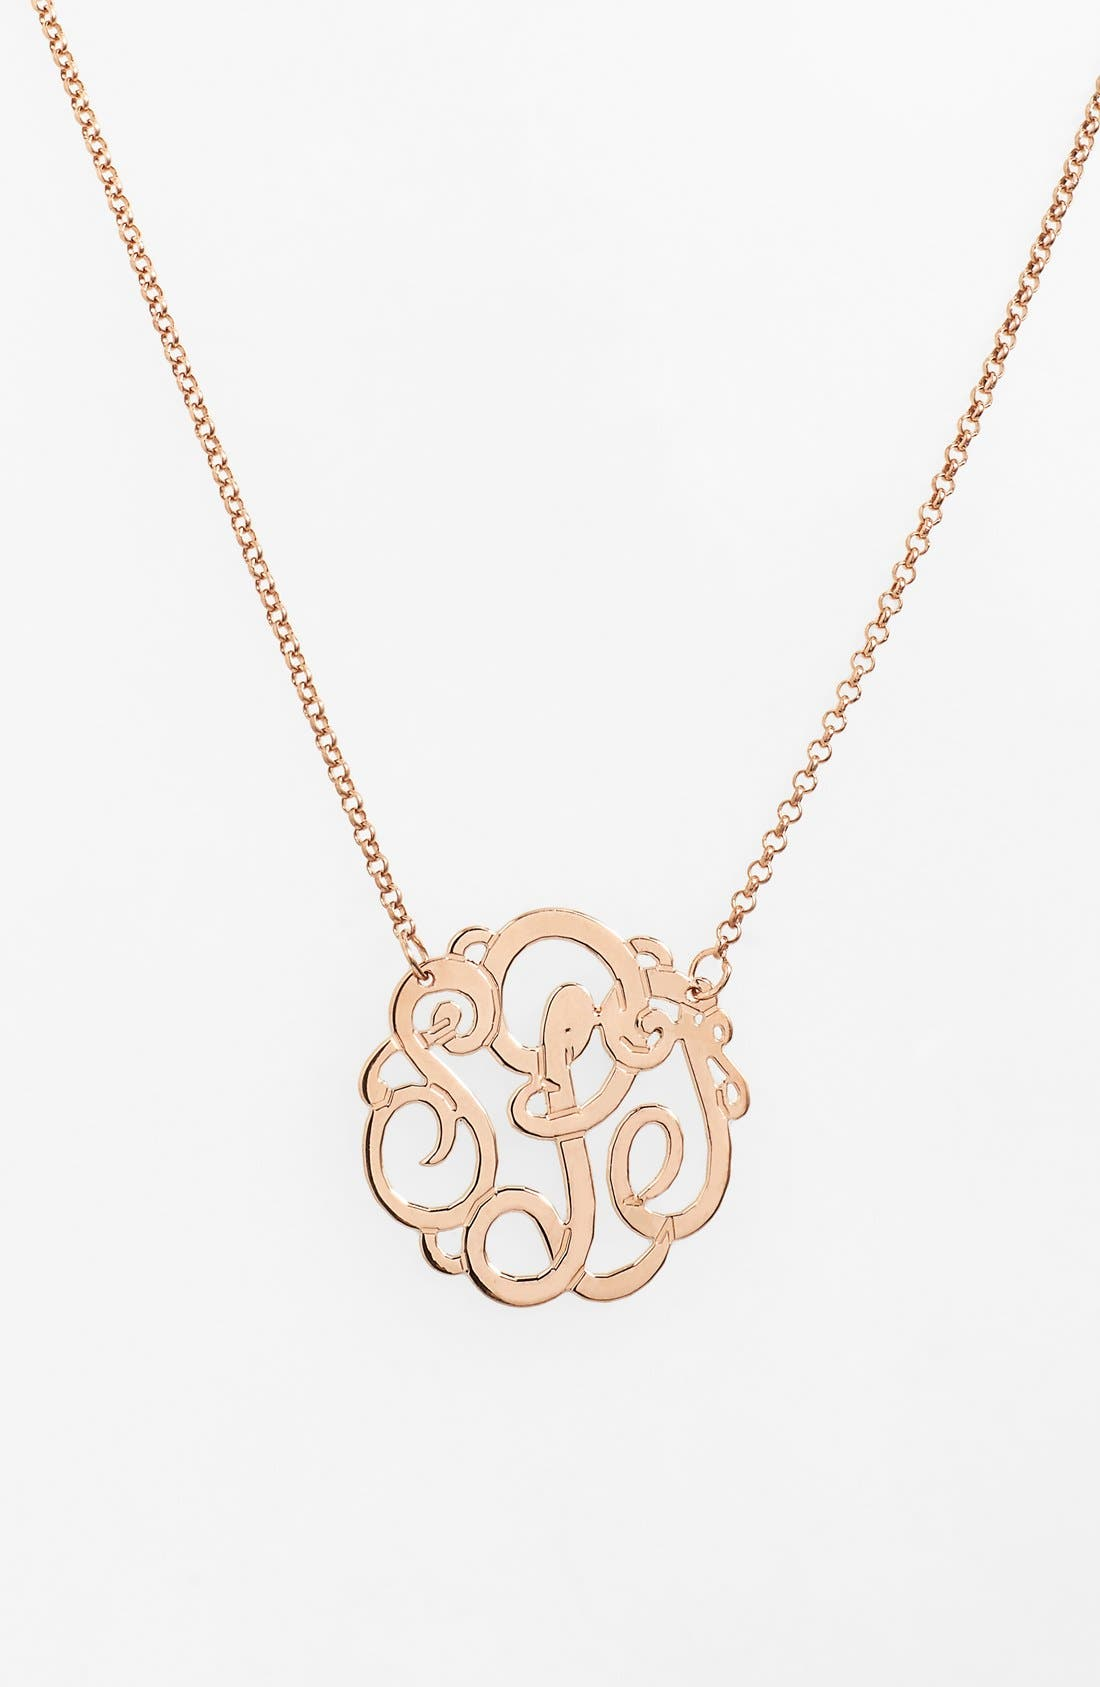 Personalized Small 3-Initial Letter Monogram Necklace,                         Main,                         color, ROSE GOLD